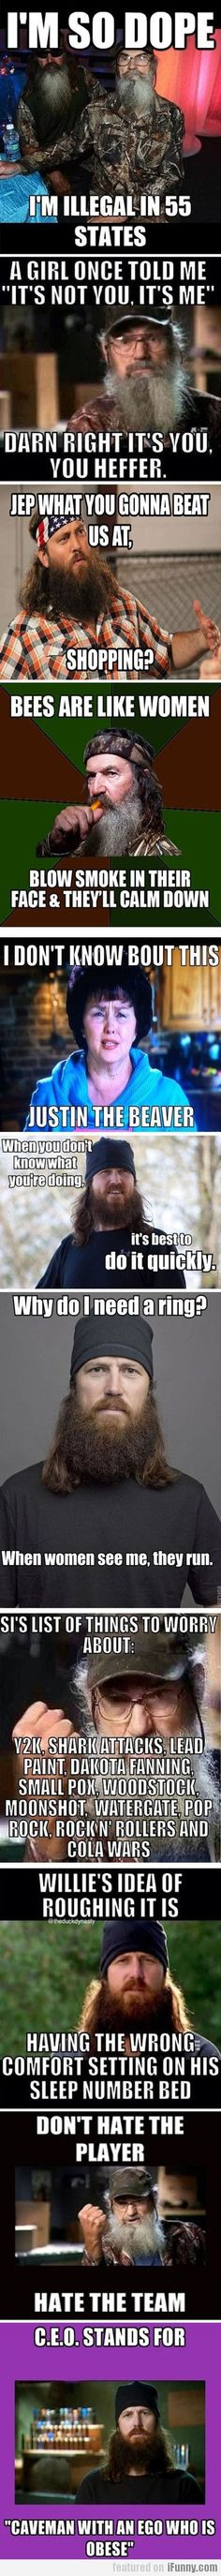 Hahaha love duck dynasty, they come up with real original!